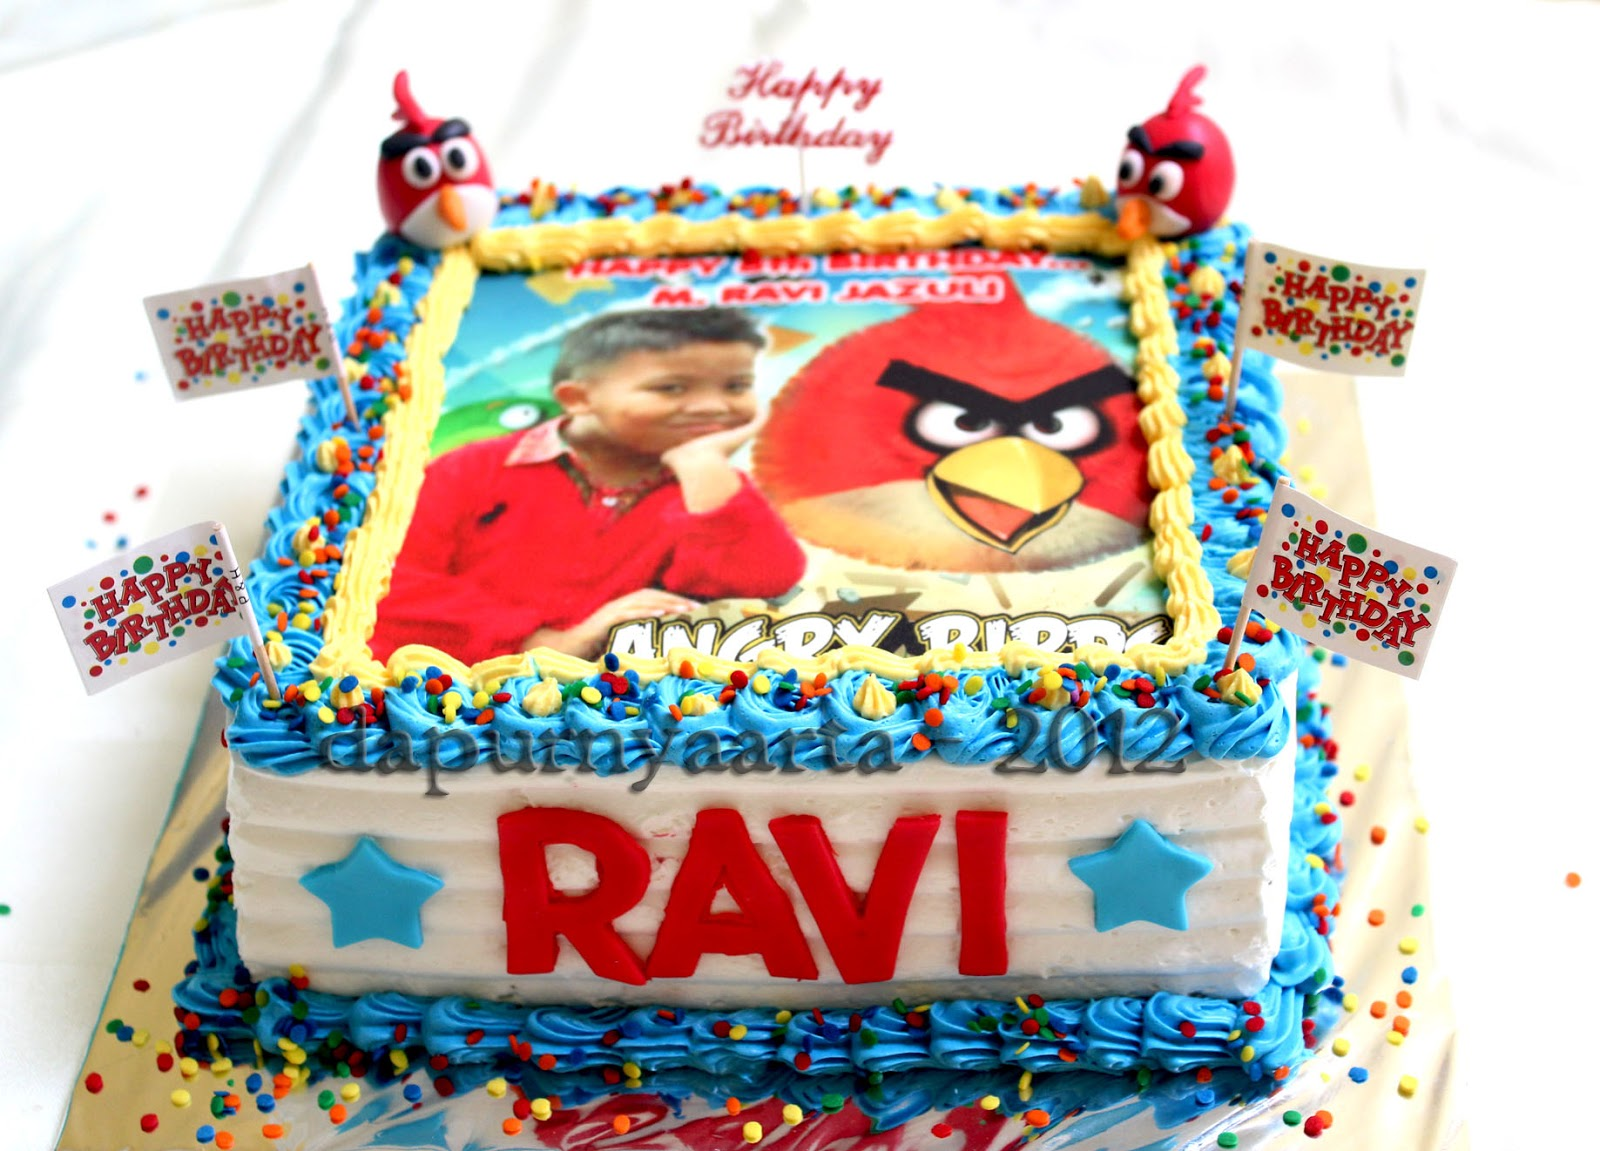 Birthday Cake Image Ravi : Dapurnya Arta: Cake and Cupcakes for Ravi